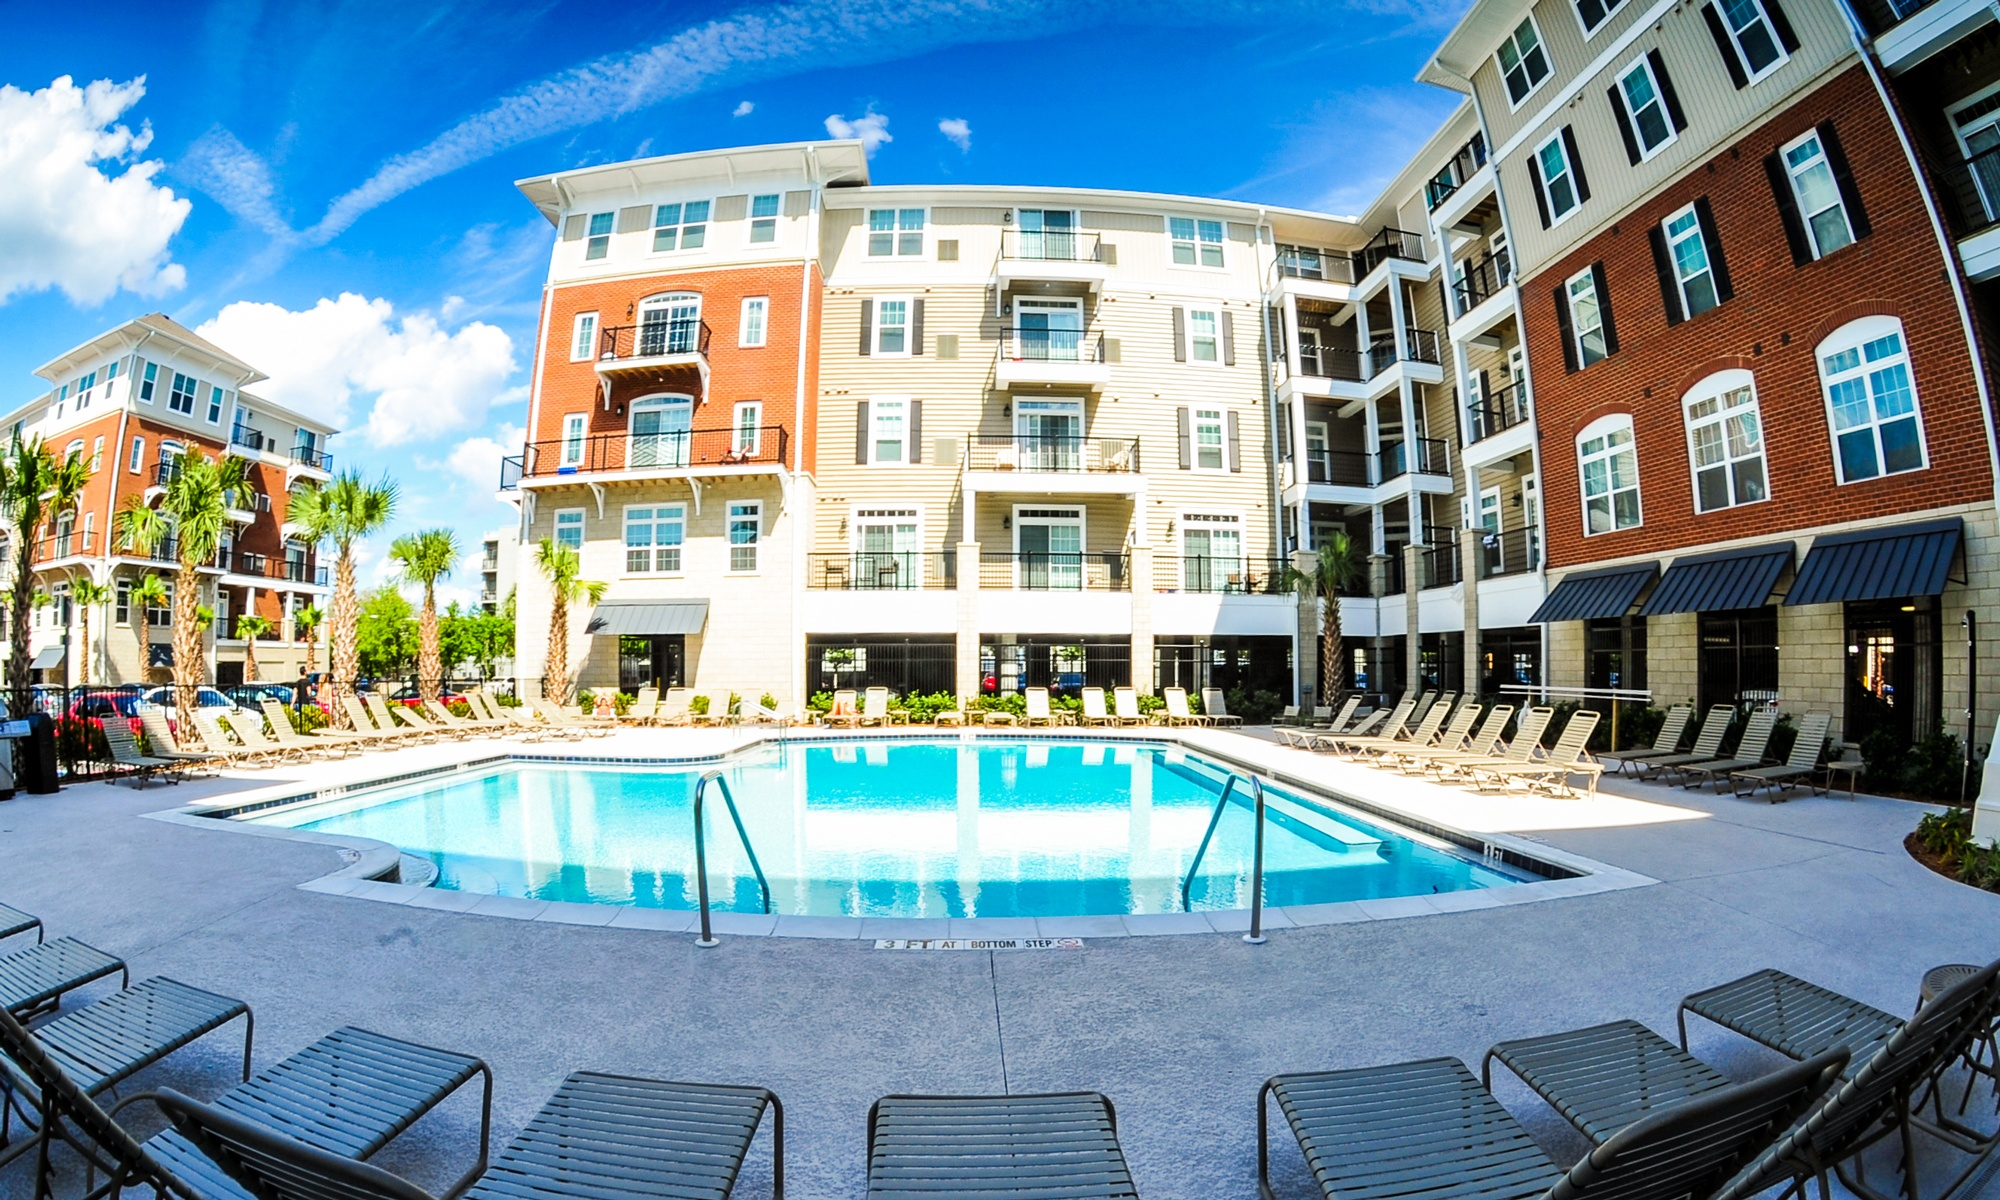 Apartments in Tampa  FL. University Tampa  FL Student Apartments for Rent   The Flats at 4200